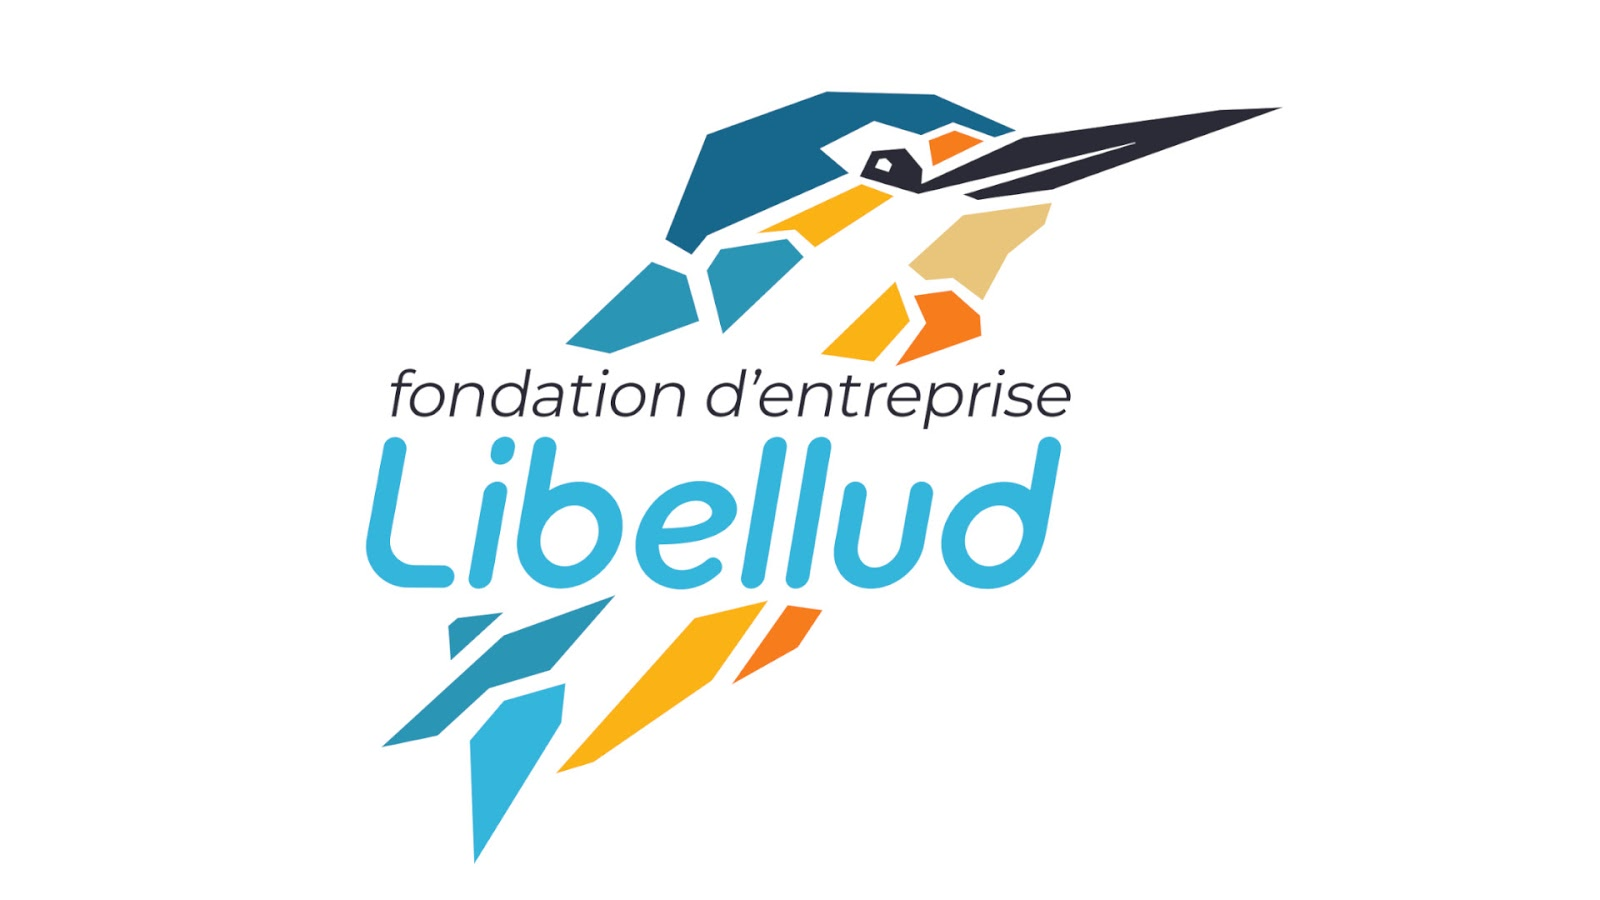 Board Game News Collider Lebellud Launches Creative Support Foundation with 1 Million Euros